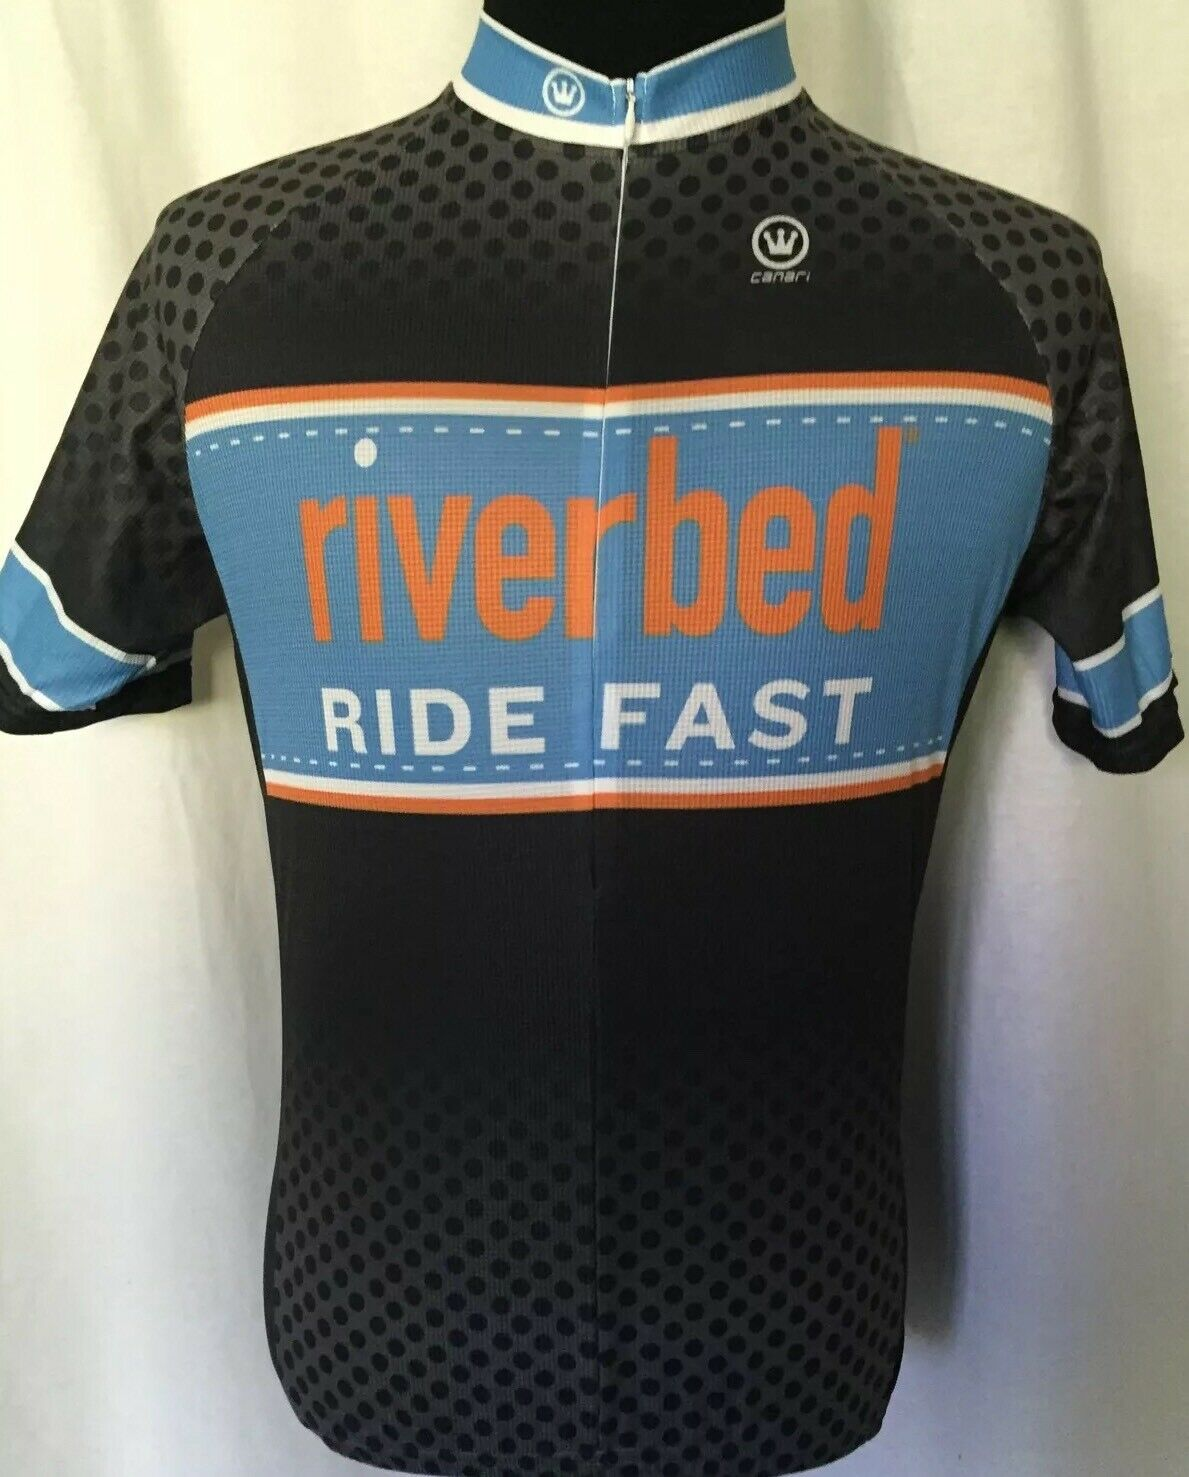 Canari Cycling Jersey Mens XL Extra Large bluee White Riverbed Ride Fast New